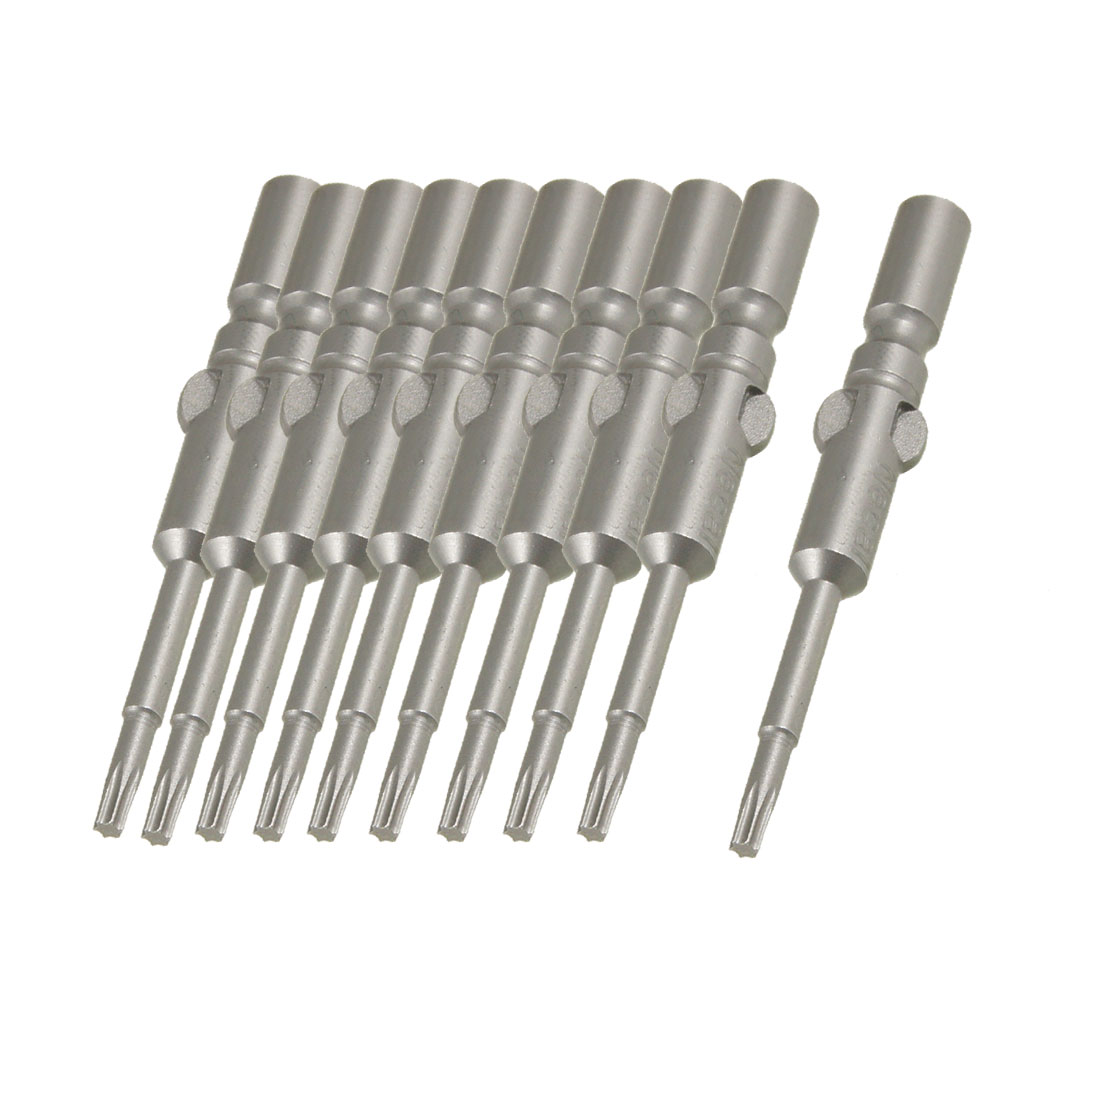 10 Pcs 2.3mm Tip 60mm Long Magnetic Torx Screwdriver Insert Bits Tool